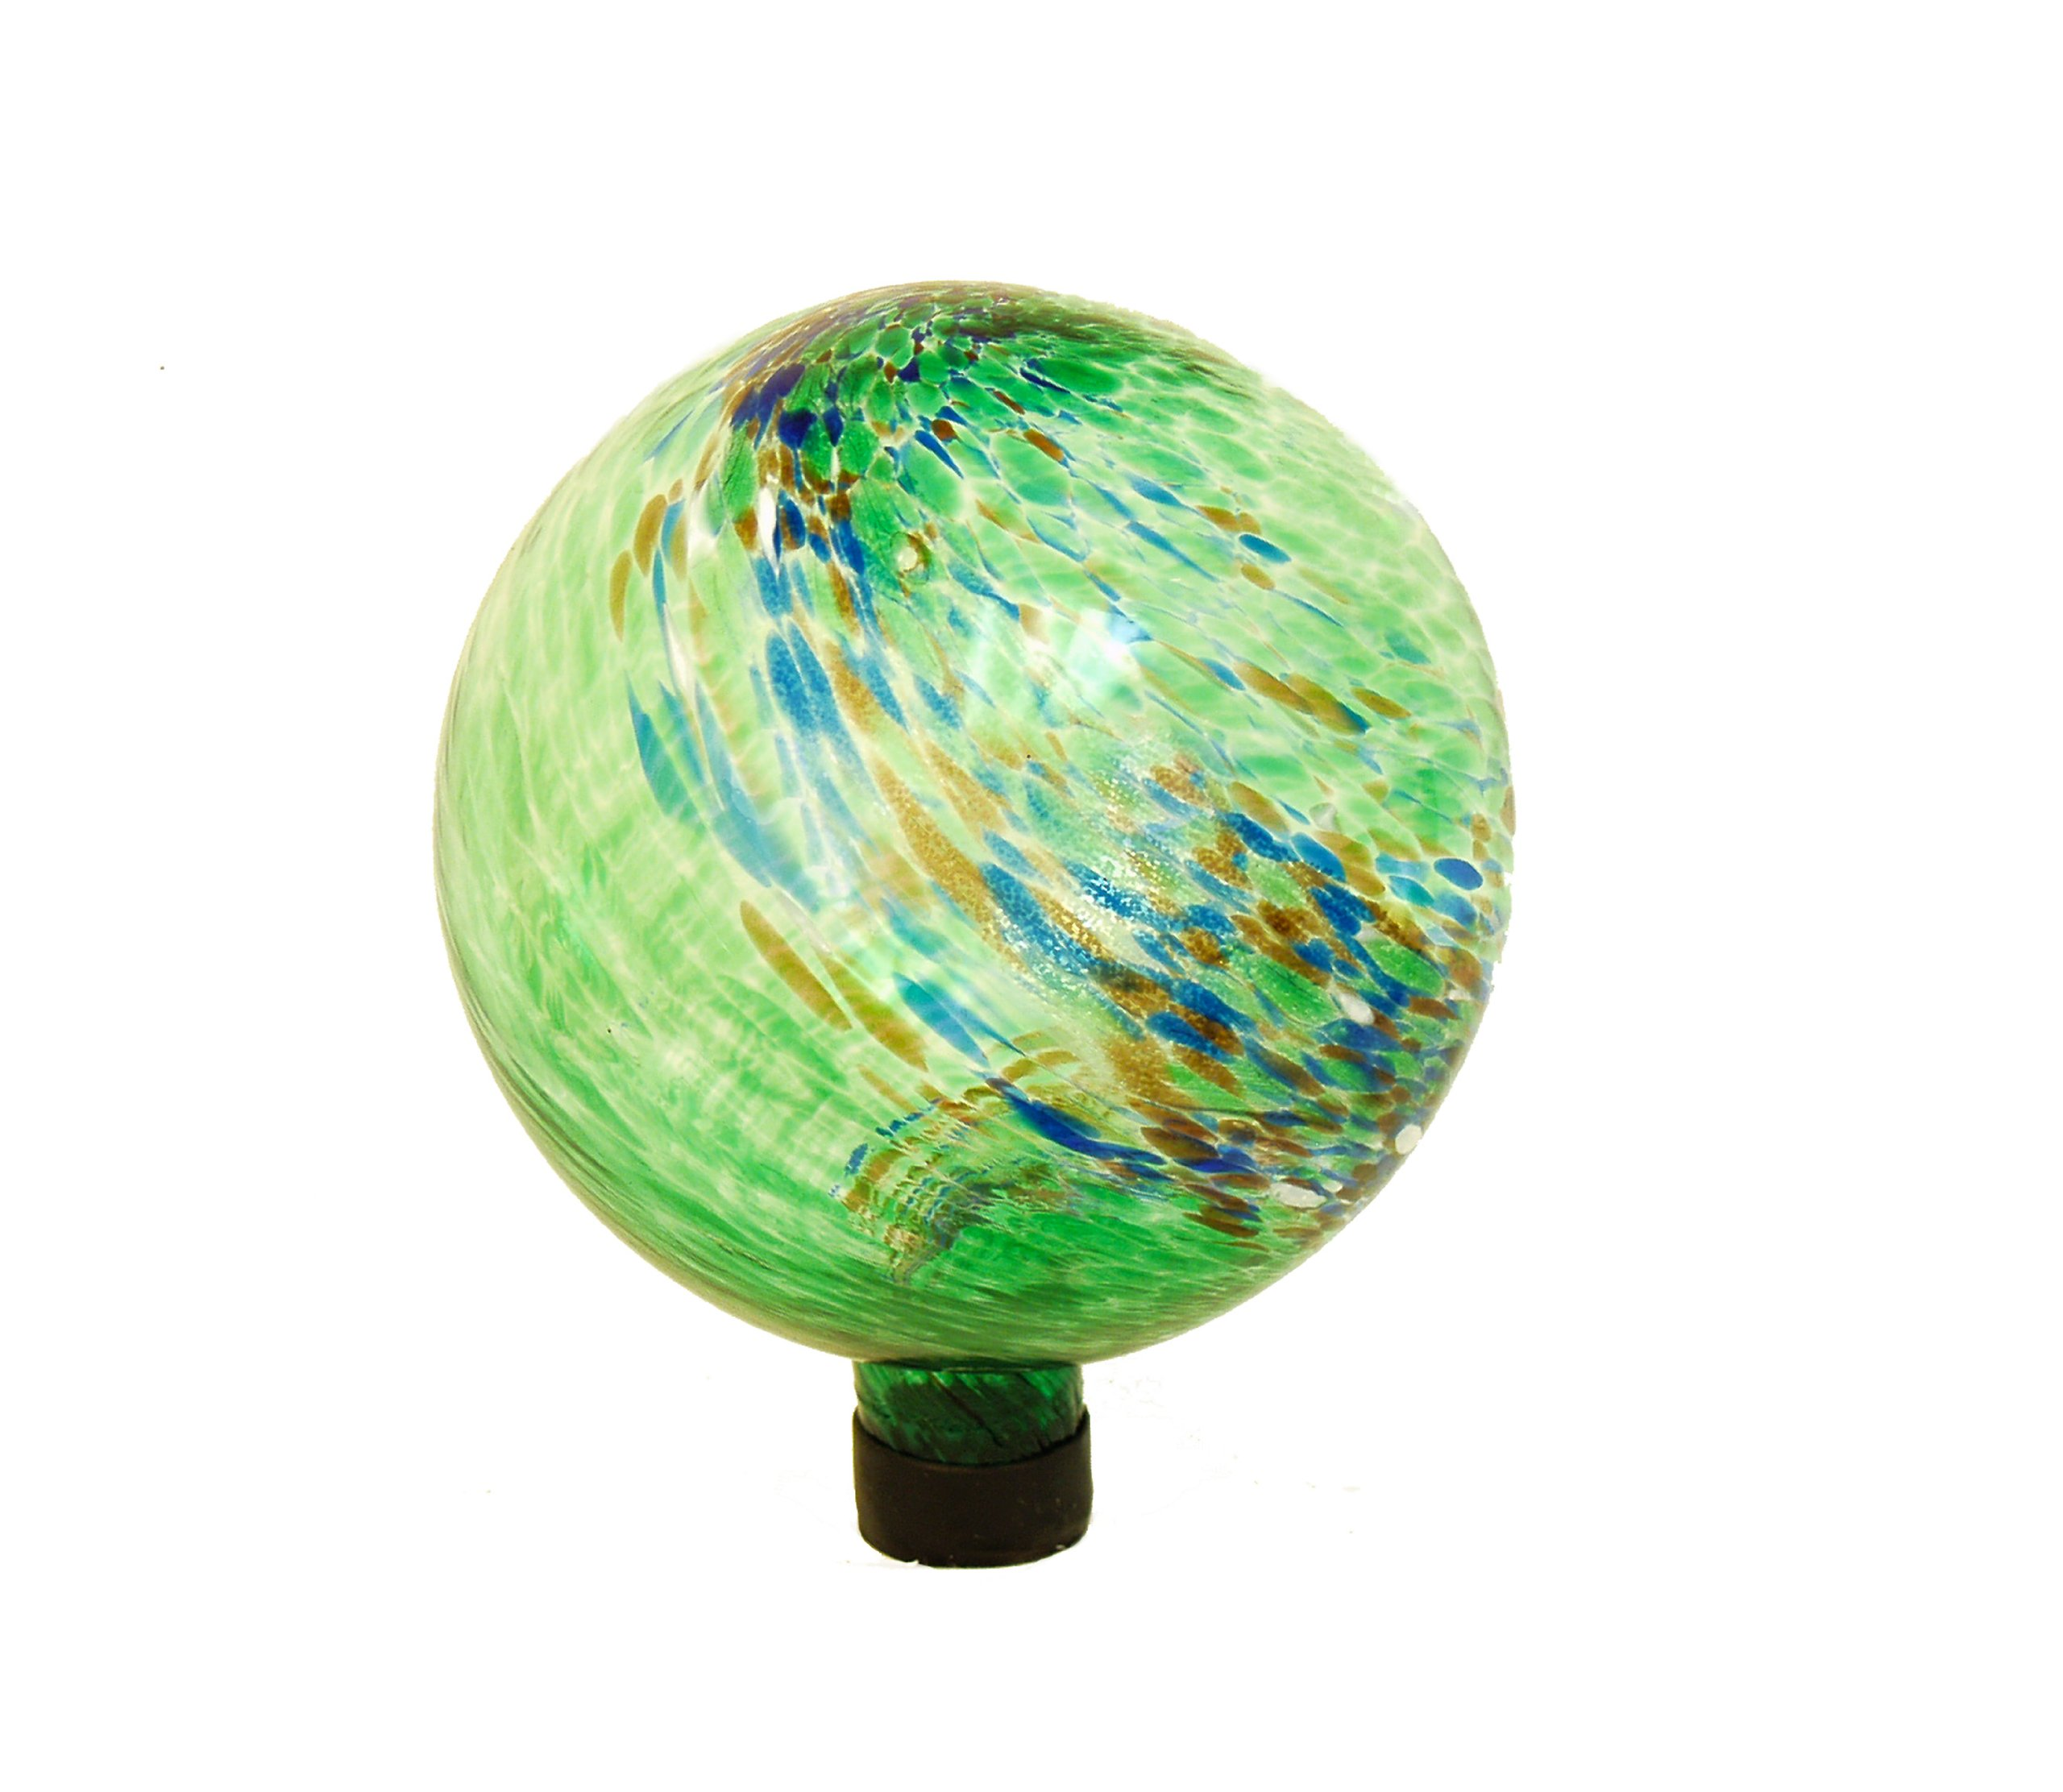 Echo Valley 8141 10-Inch Glow-in-the-Dark Illuminarie Glass Gazing Globe, Green Swirl